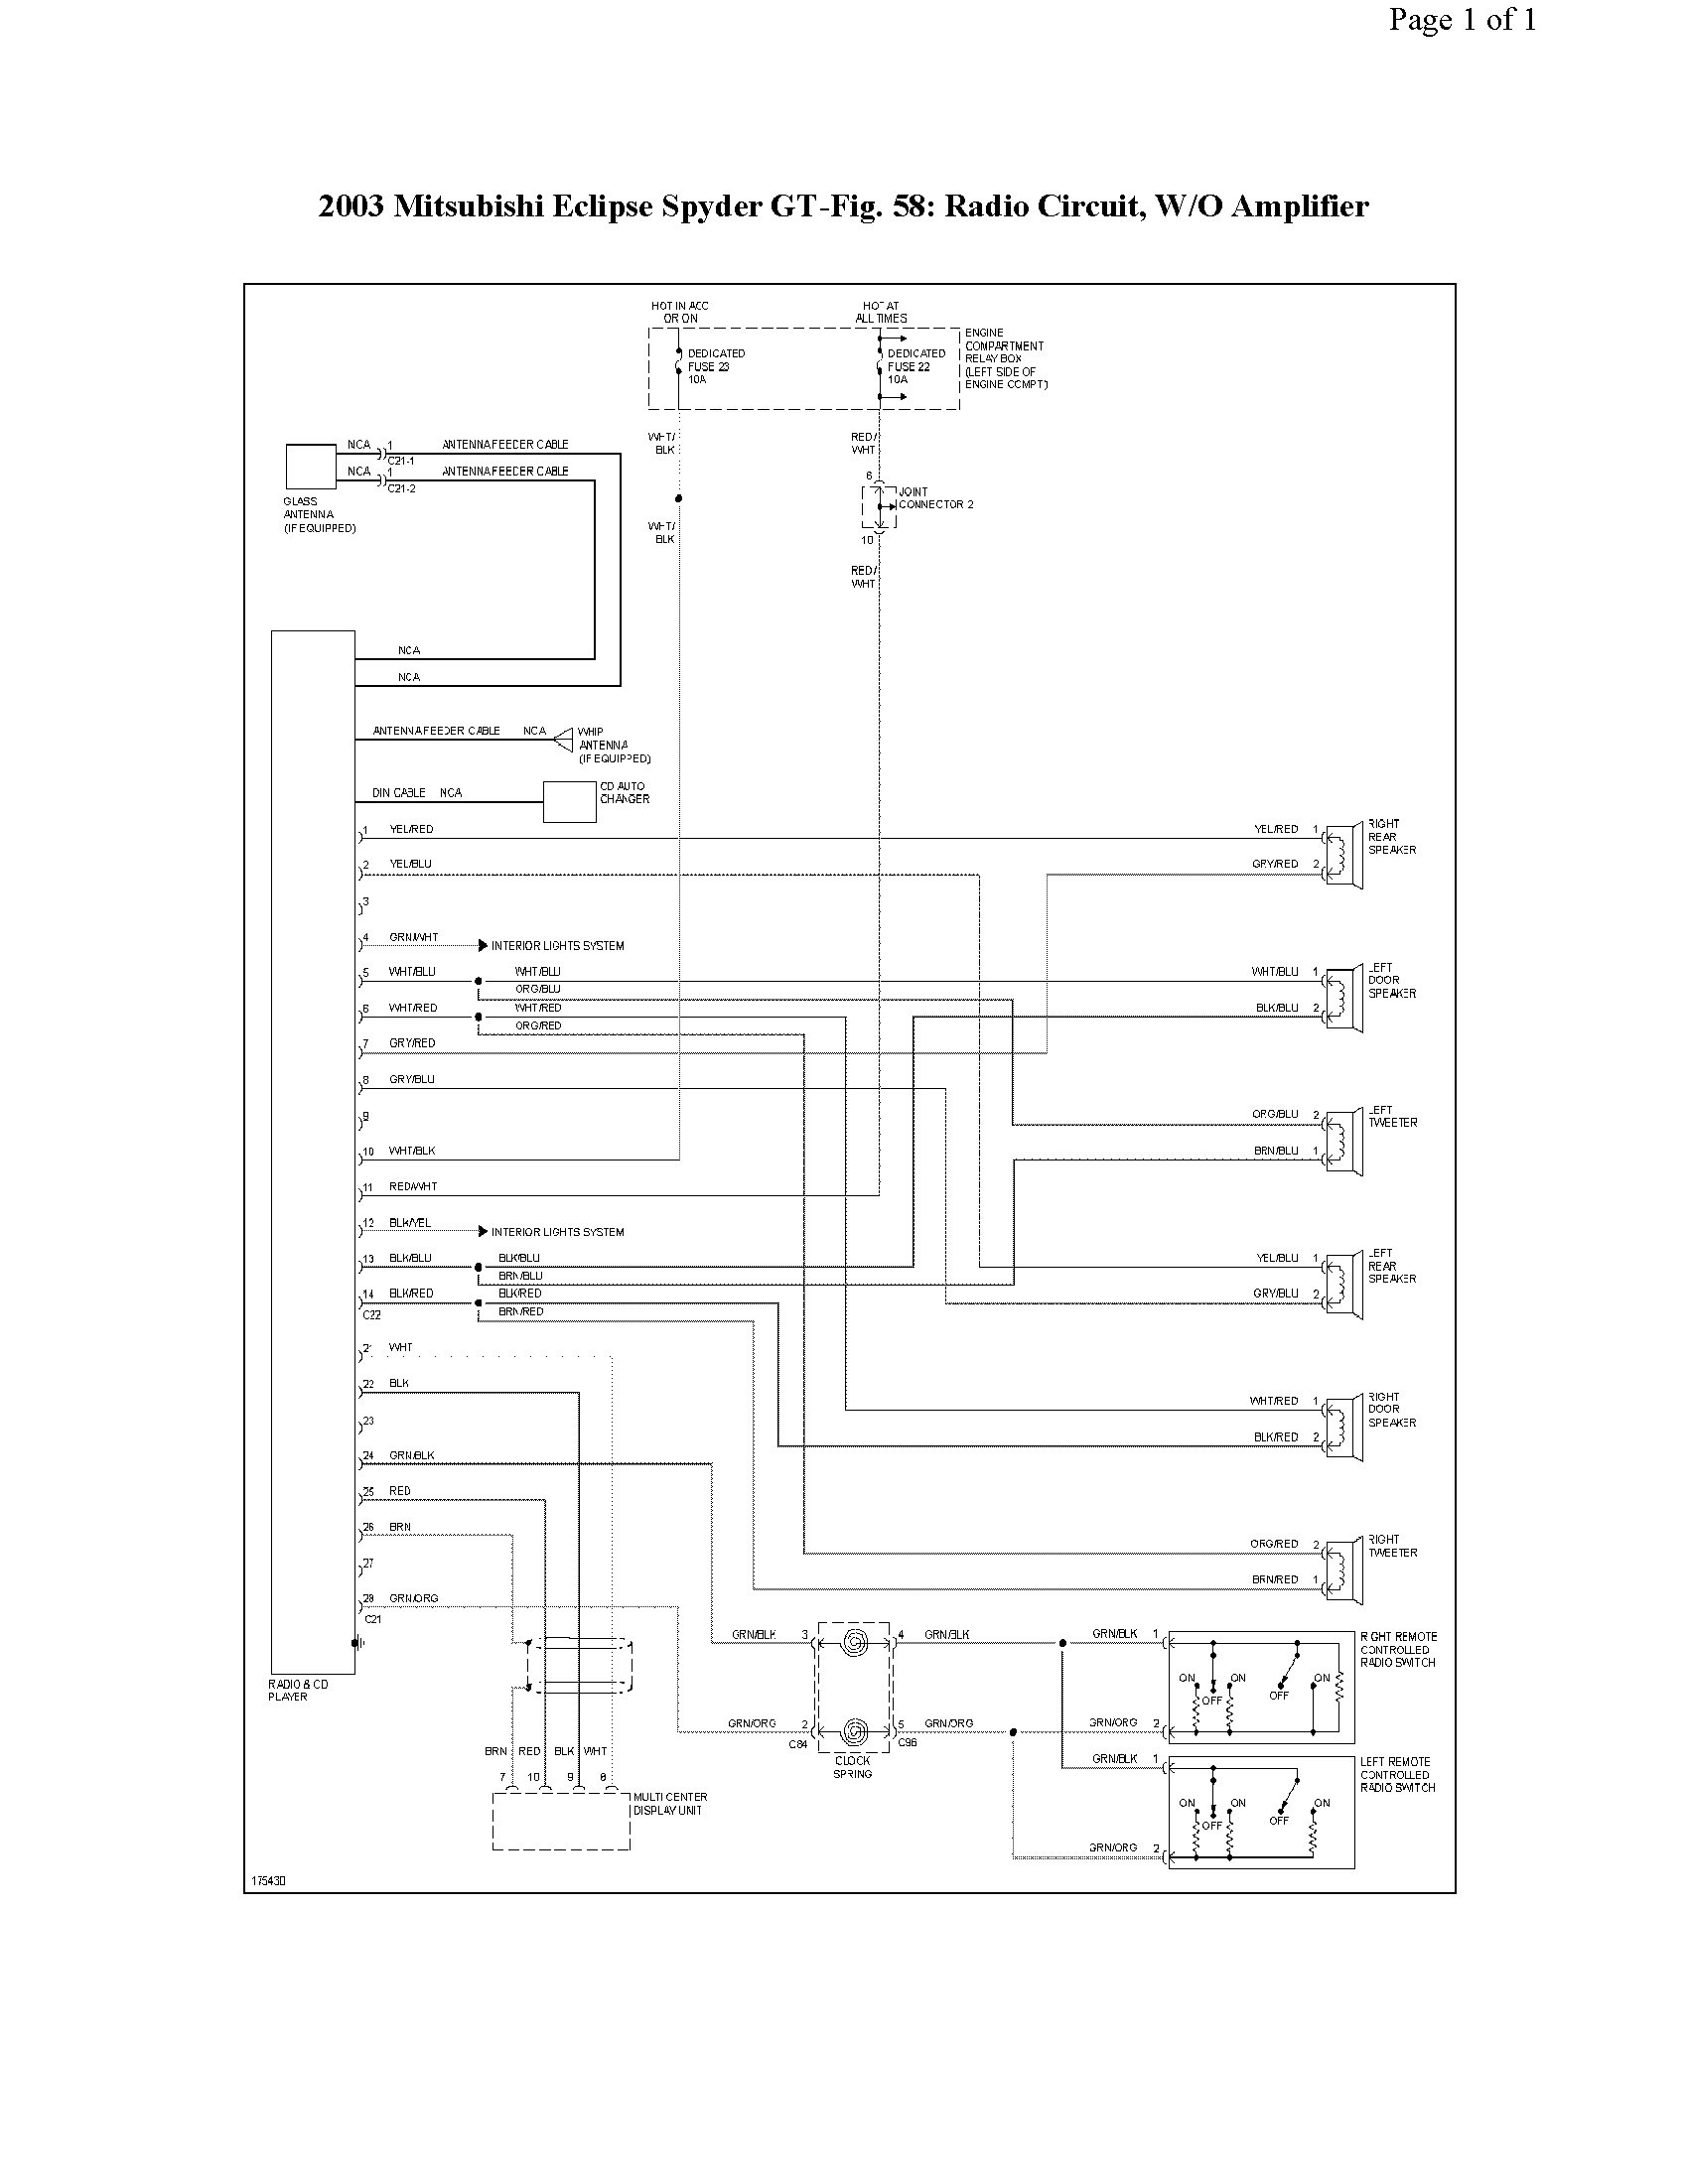 hight resolution of 2001 mitsubishi eclipse engine diagram wiring diagram moreover 2001 mitsubishi eclipse radio wiring diagram of 2001